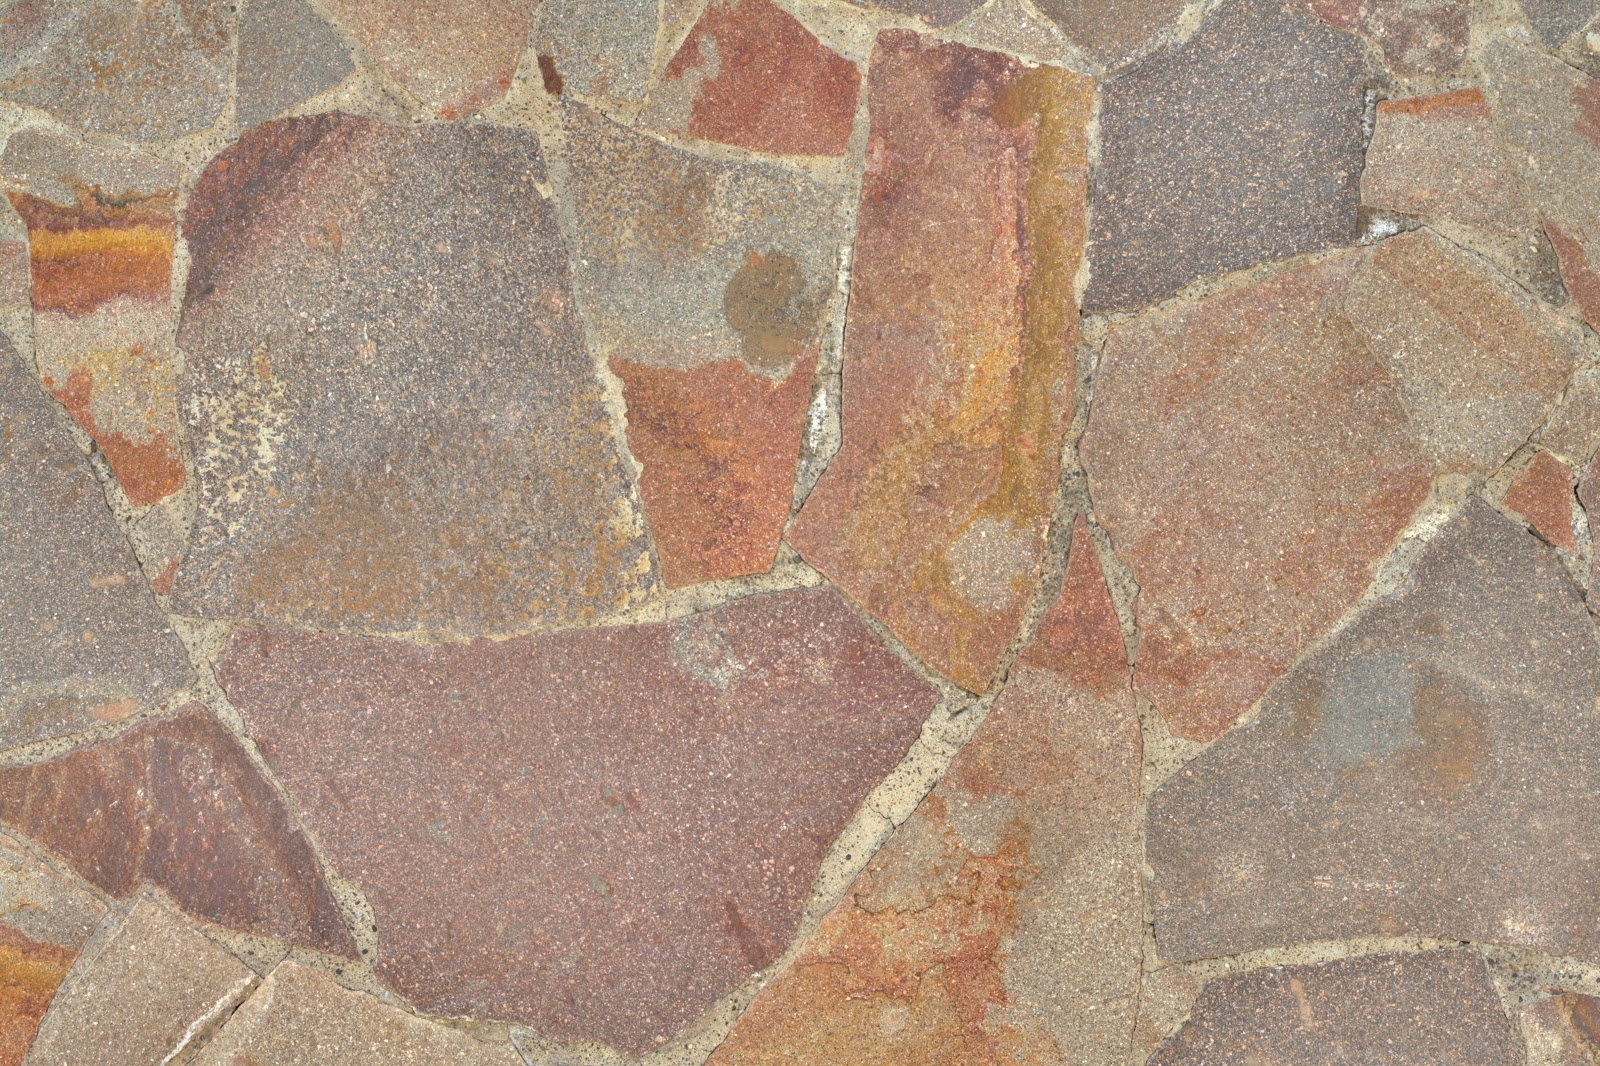 stone floor tile texture. Stone Large Coloured Floor Tiles Texture 4770x3178 High Resolution Seamless Textures